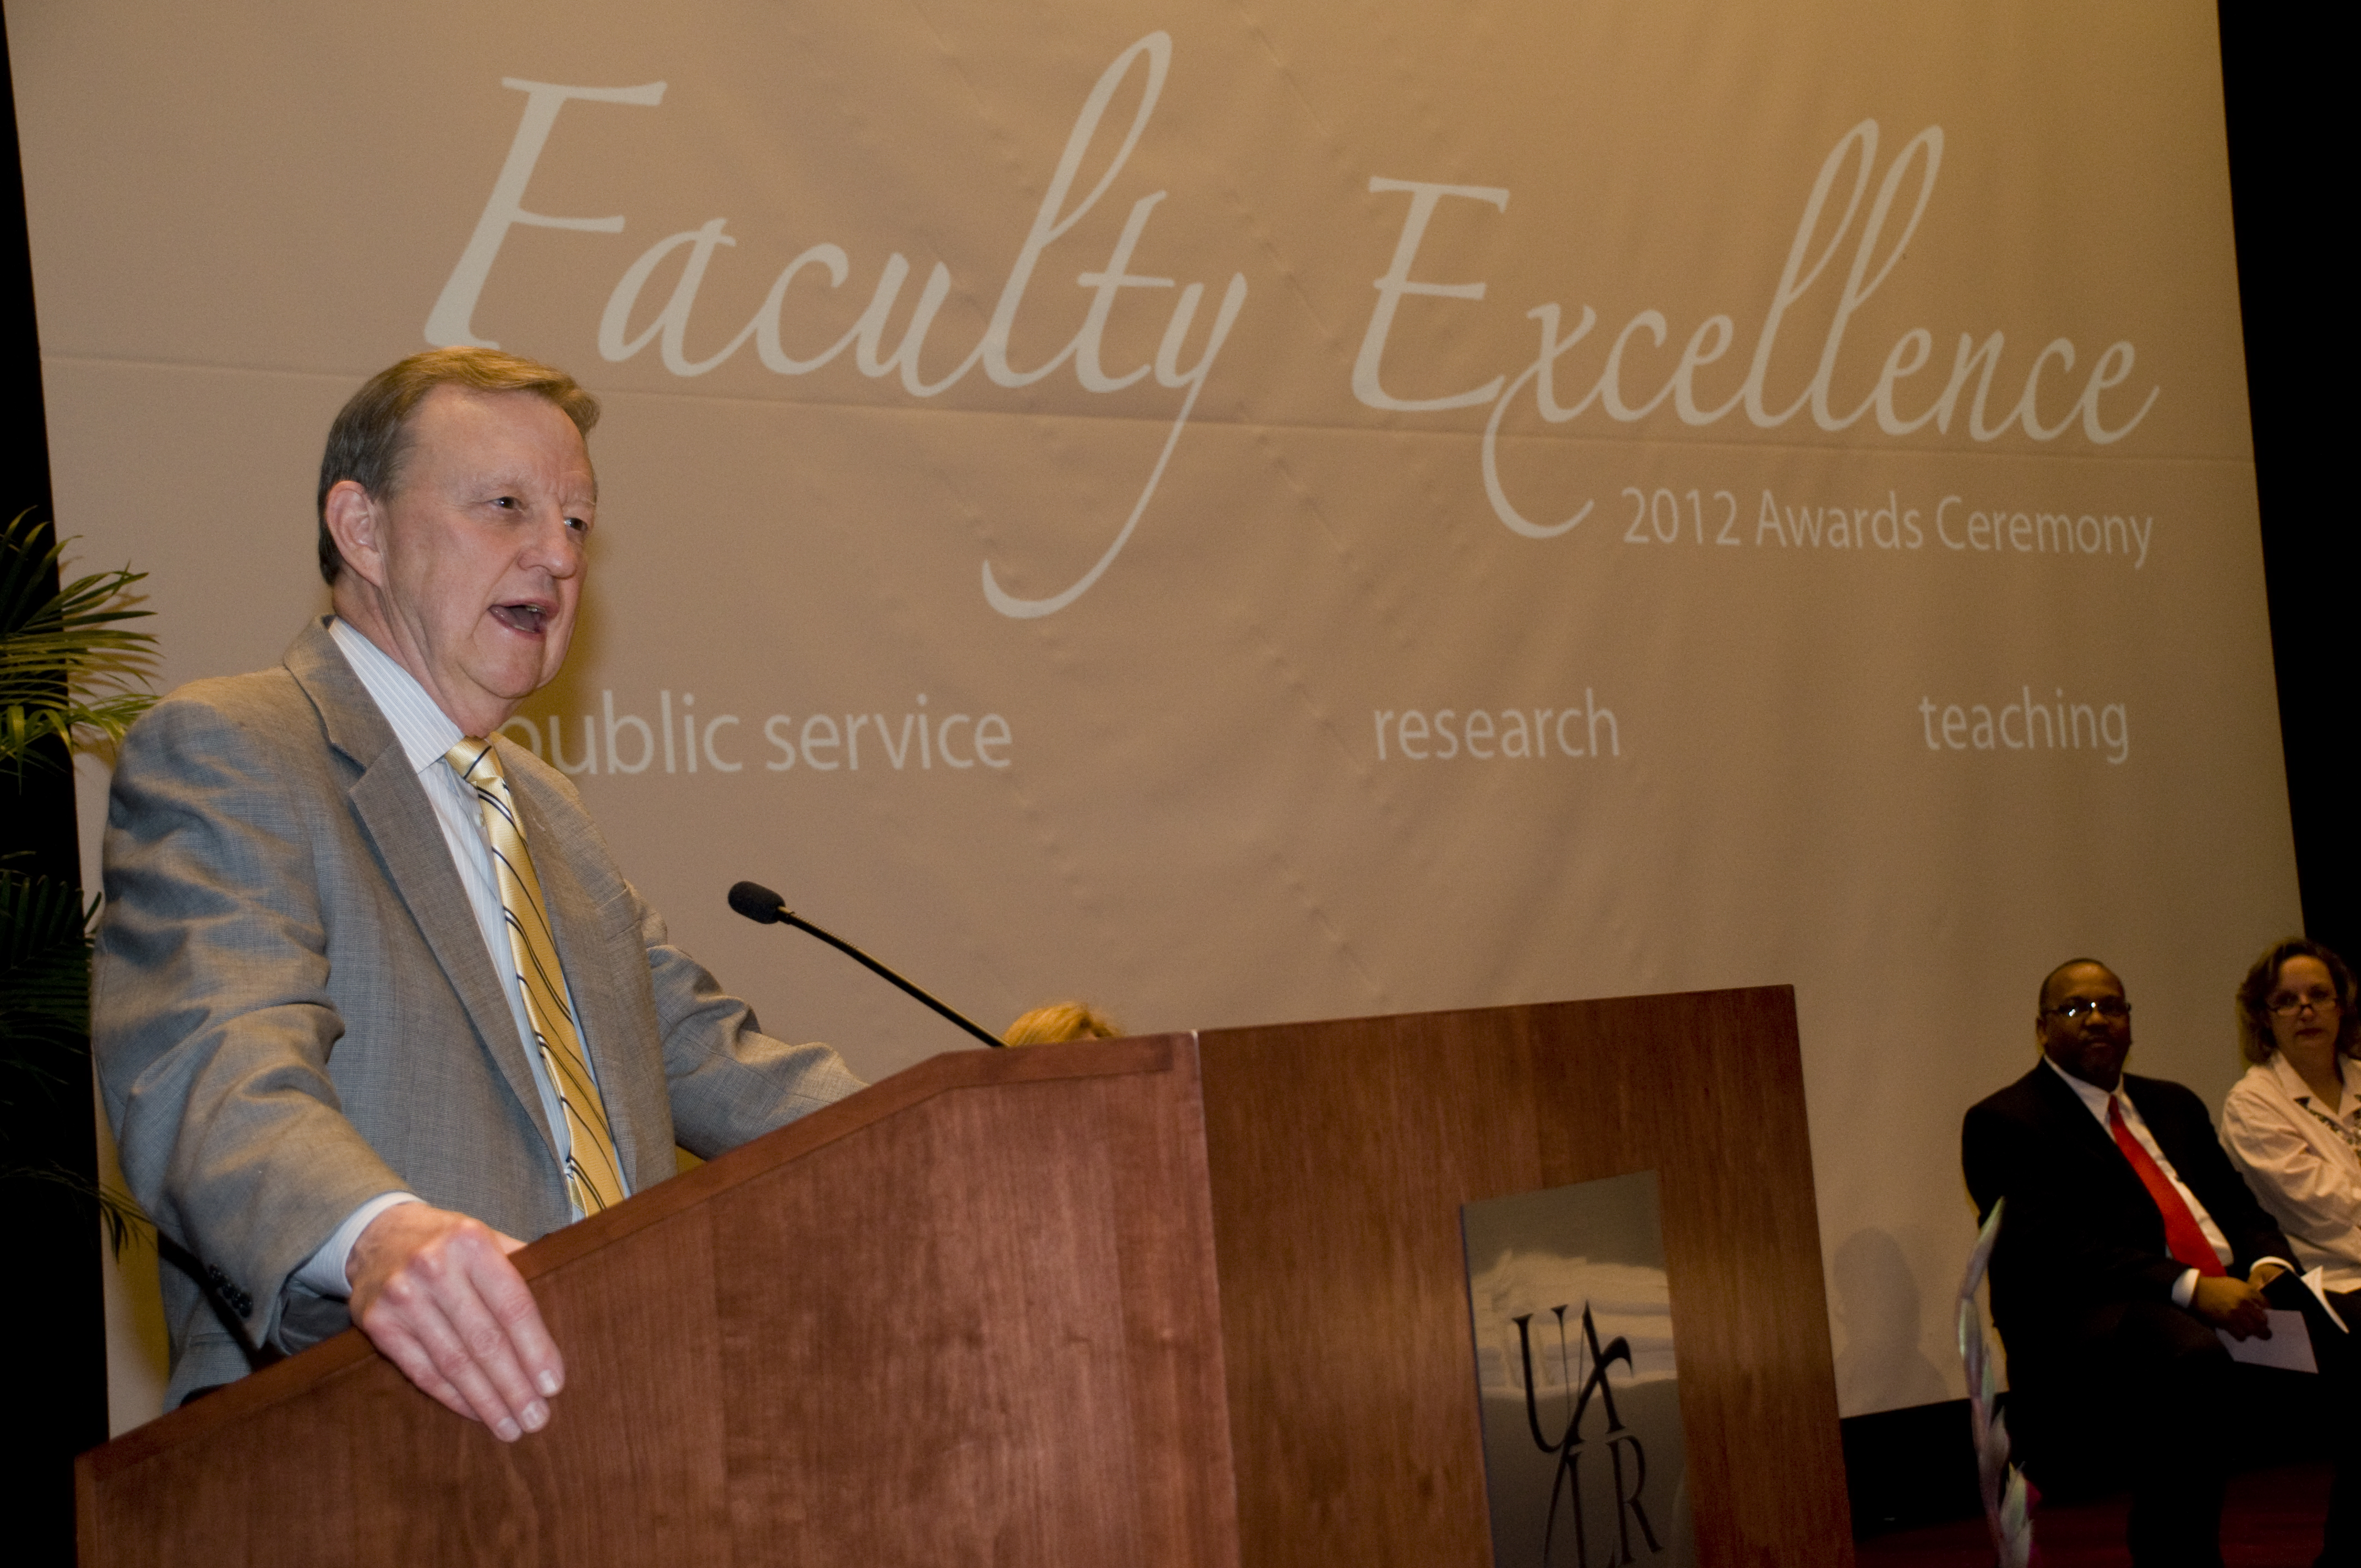 Faculty Excellence Awards at UALR